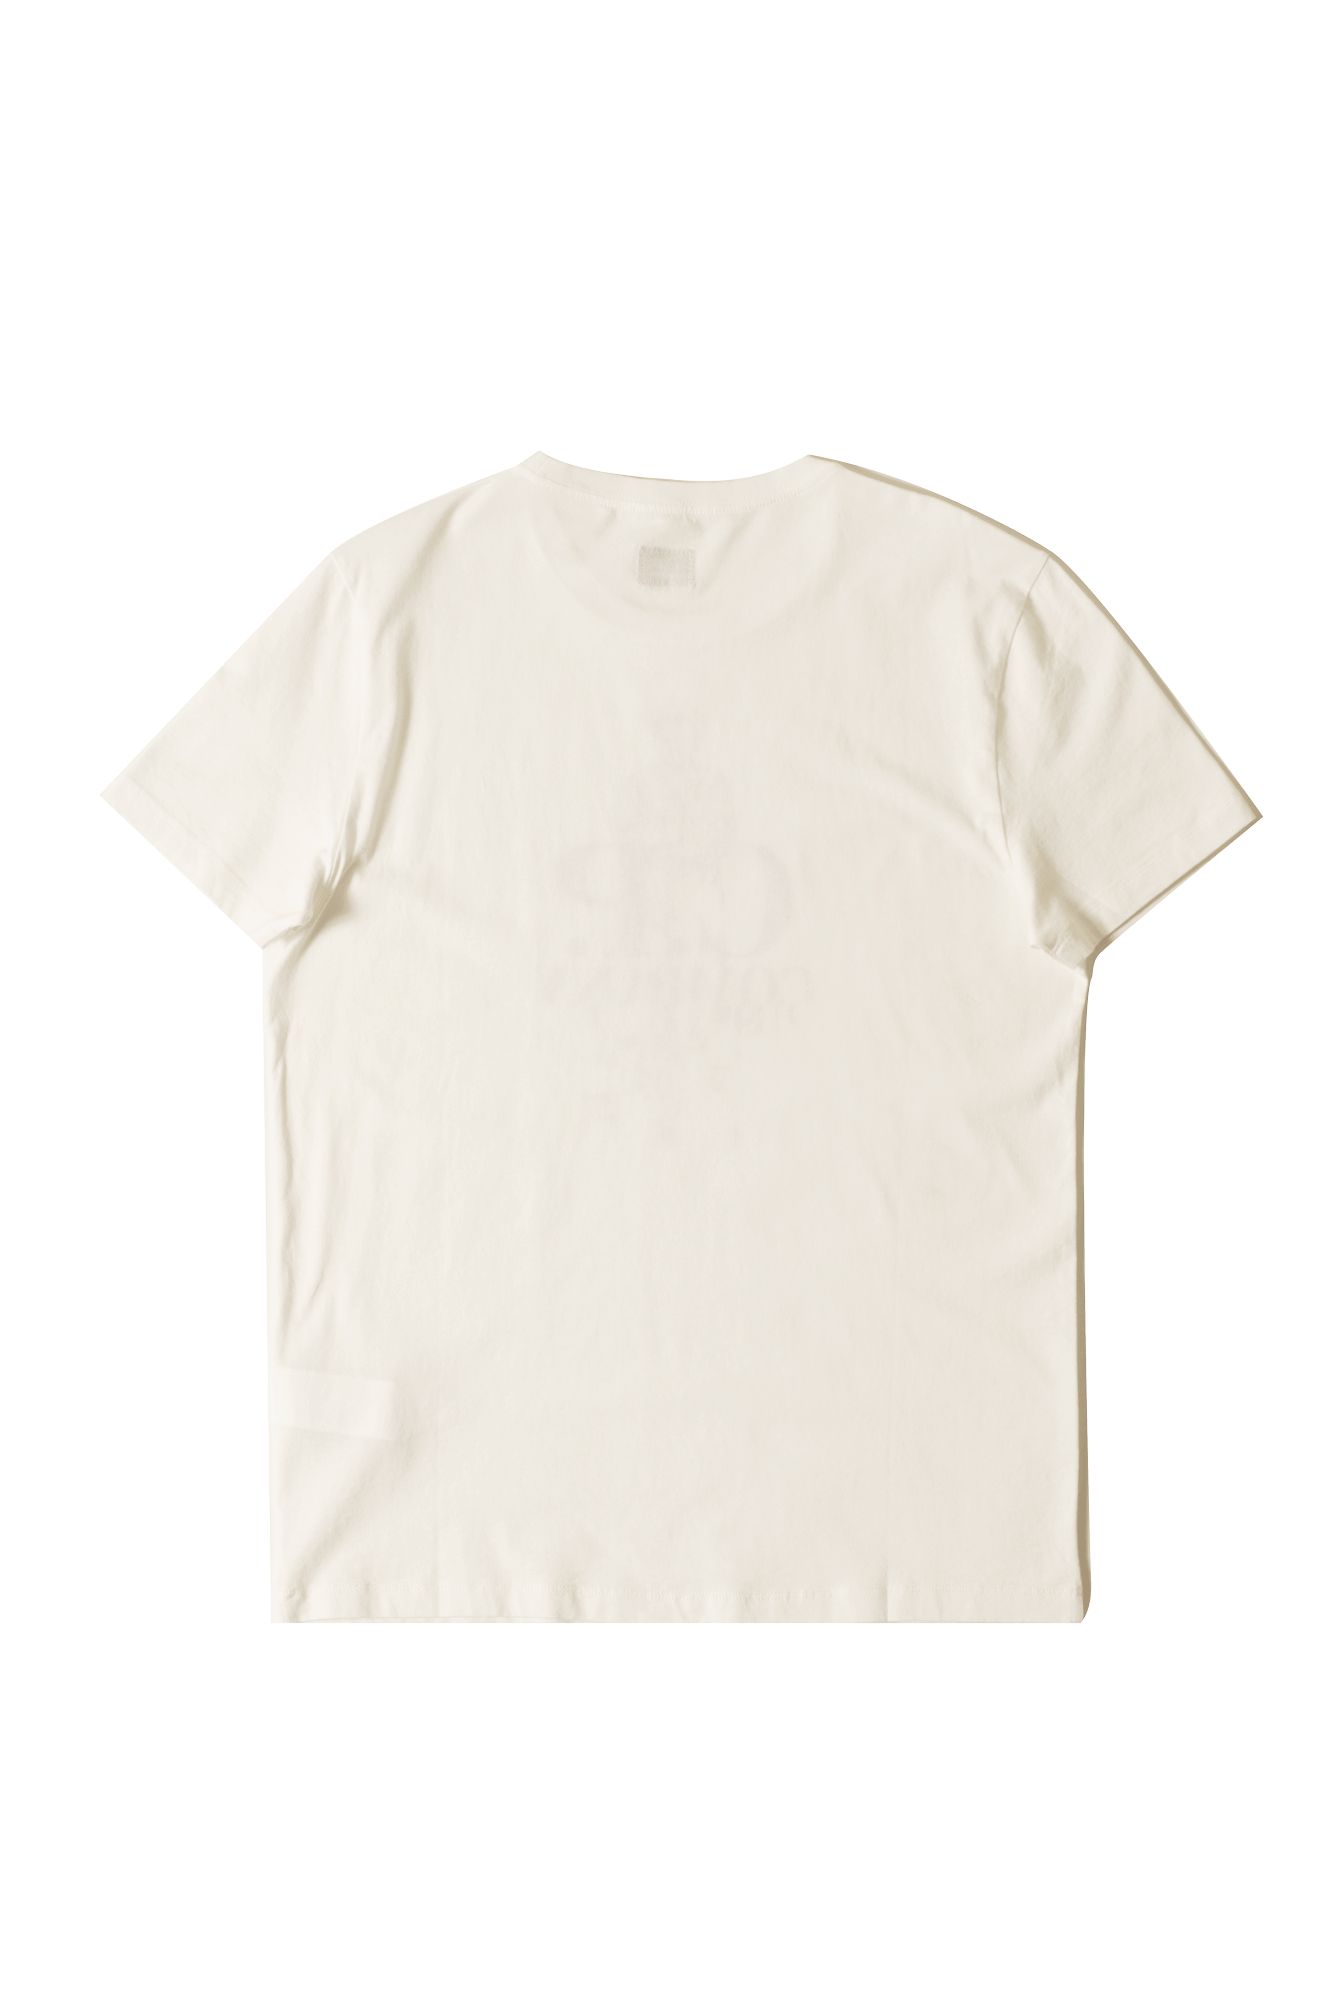 C.P. Company T-Shirts Short Sleeve T-Shirt White 071A005100#W000#WHT#XL - One Block Down